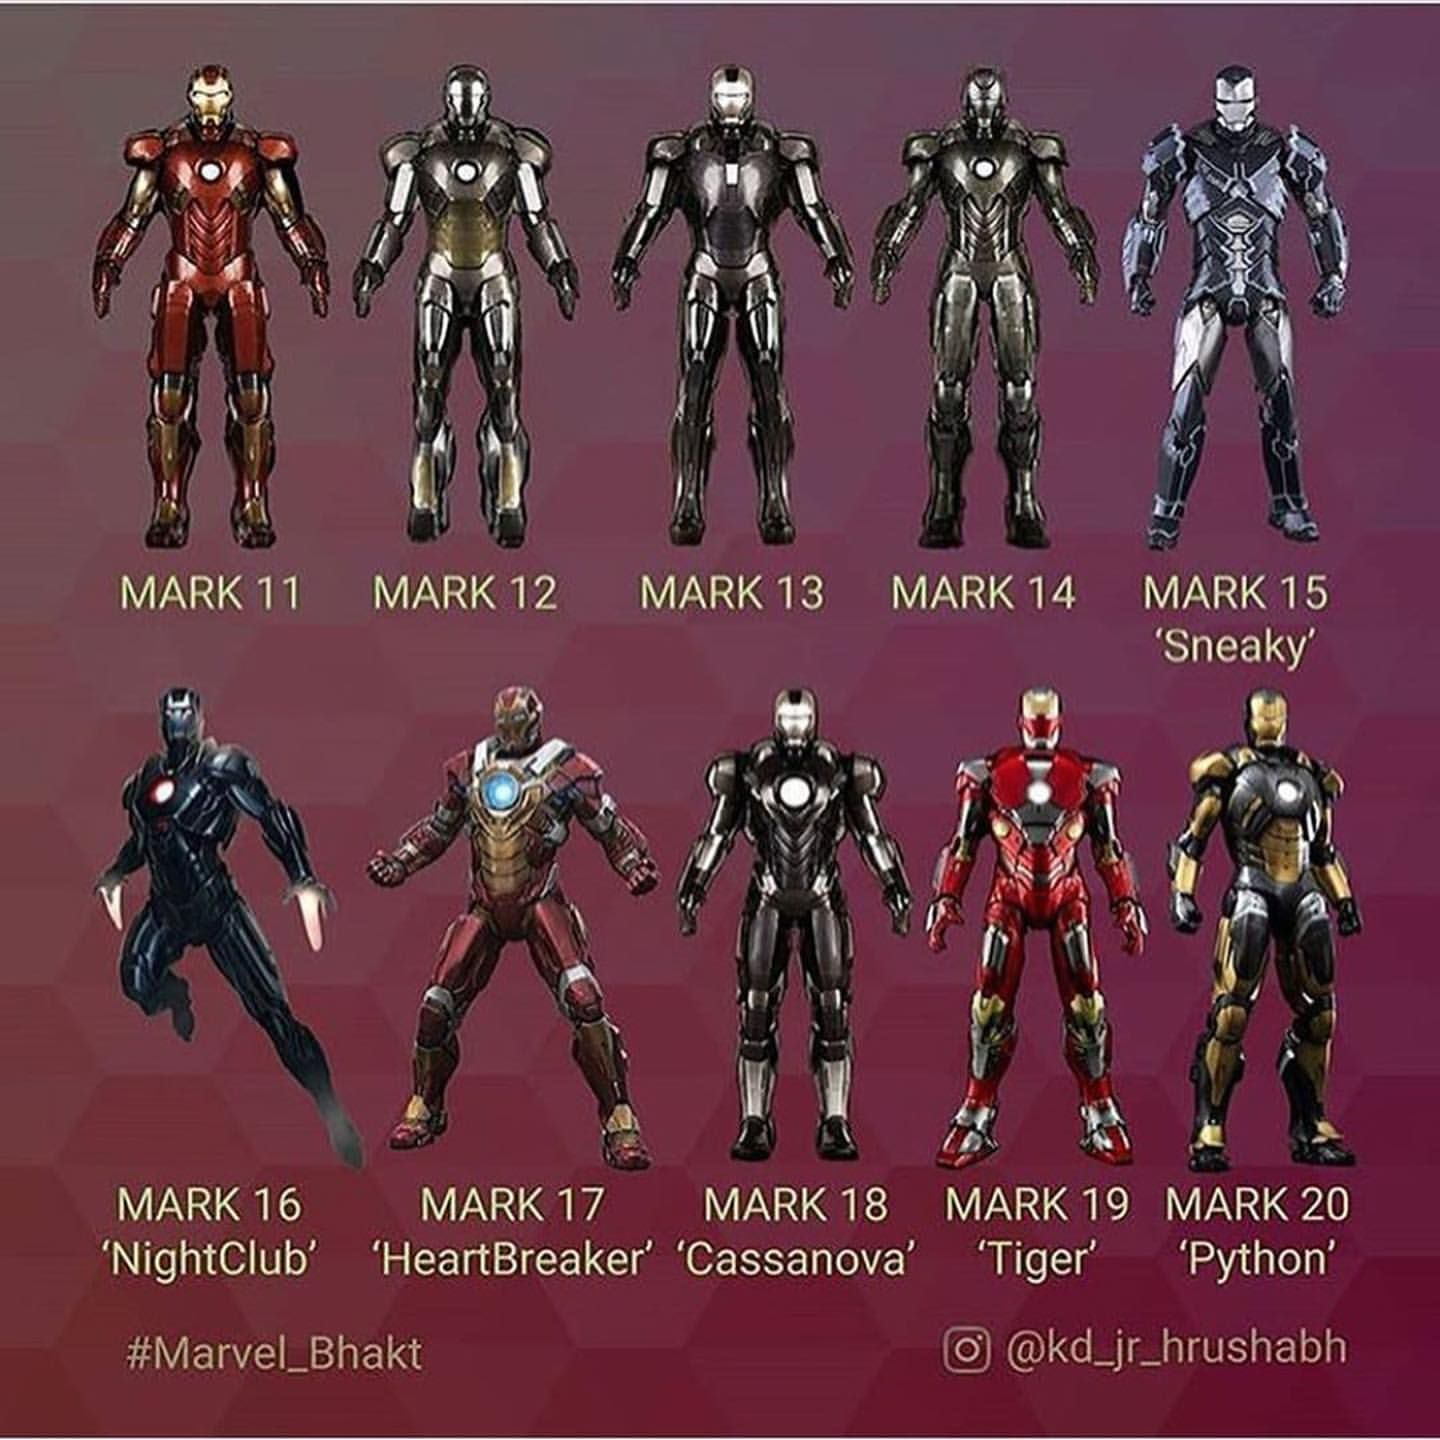 Every Single Armor That Tony Stark Built Till His Tragic Ending Excluding 2 Suits Mark 51 And Mark 84 That Marvel Never Releas Marvel Dc Marvel Spiderman Comic